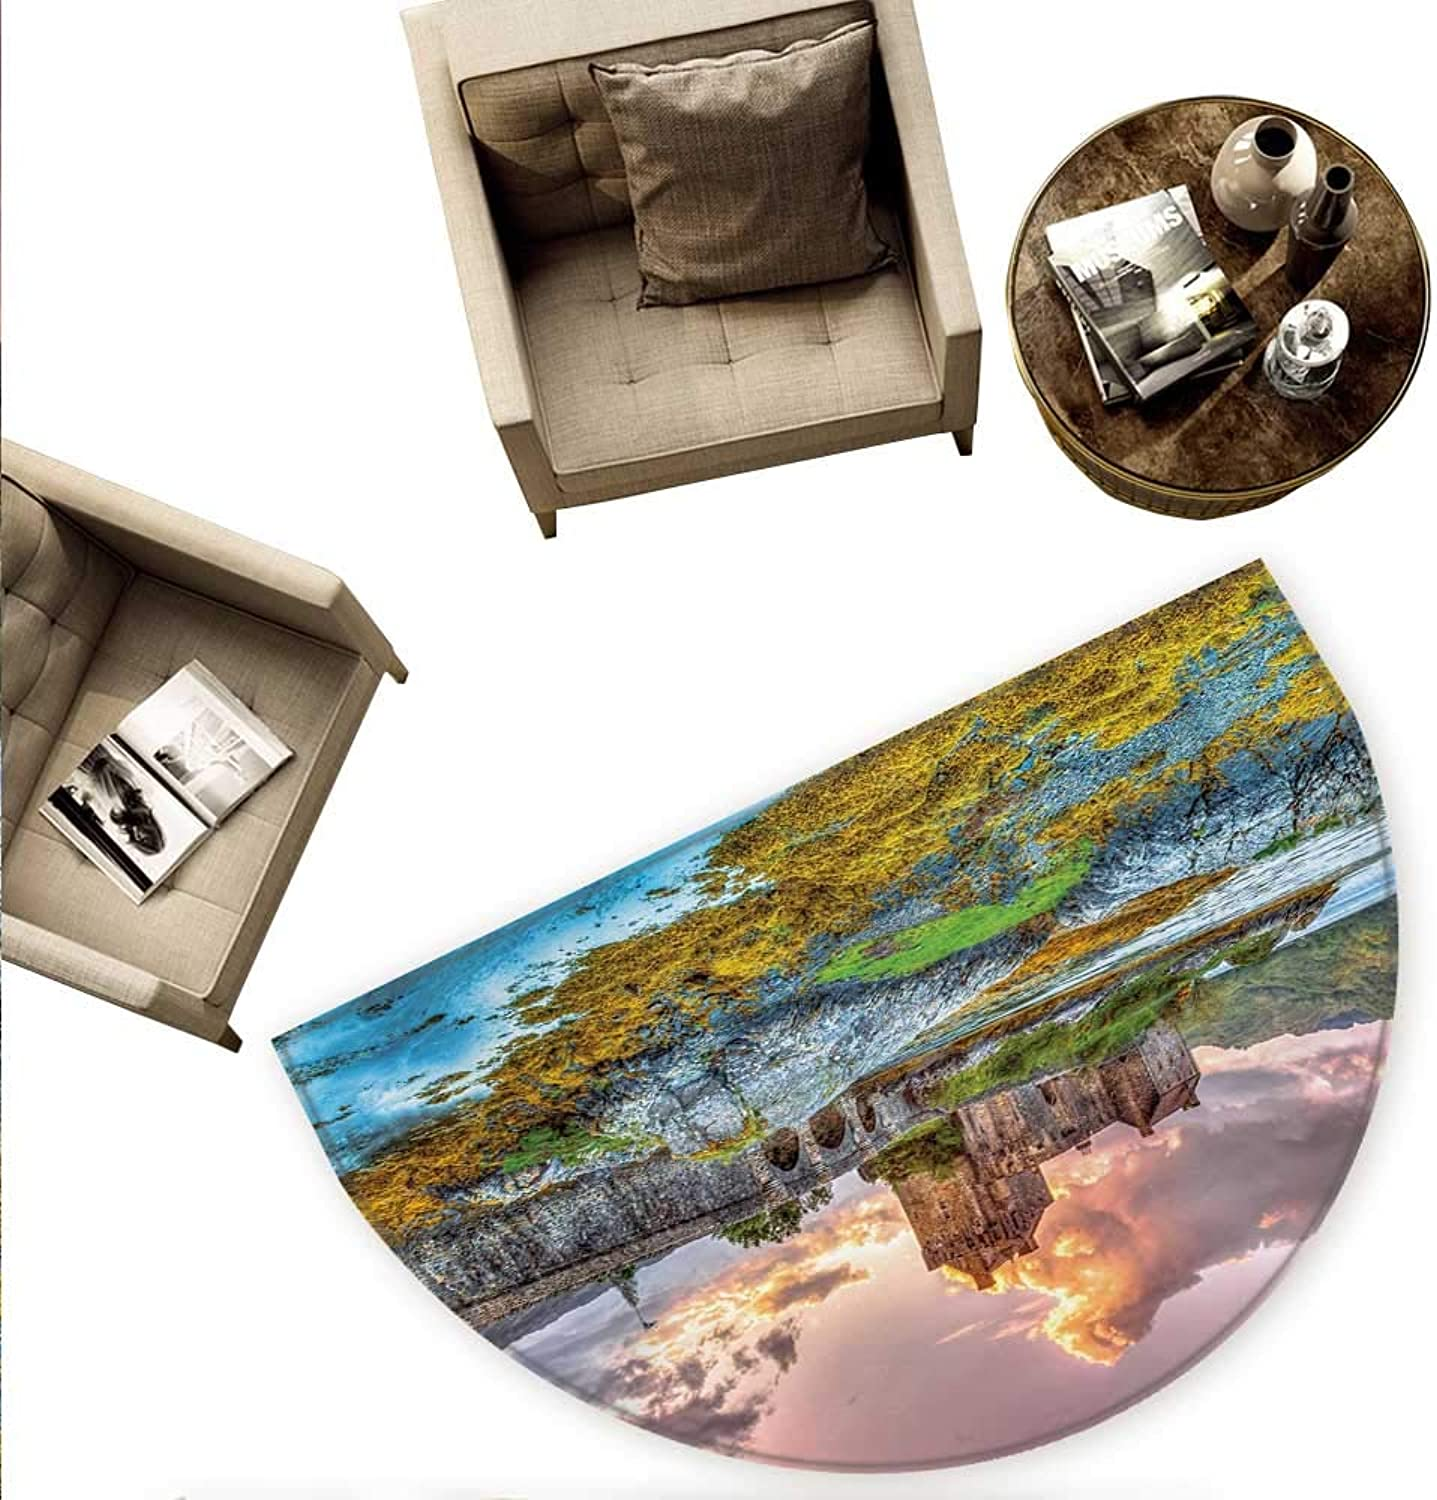 Scenery Semicircular Cushion Dreamy Ancient Times Middle Age Inspired Princess Castle Near Lake Stones Moss Entry Door Mat H 74.8  xD 112.2  Multicolor